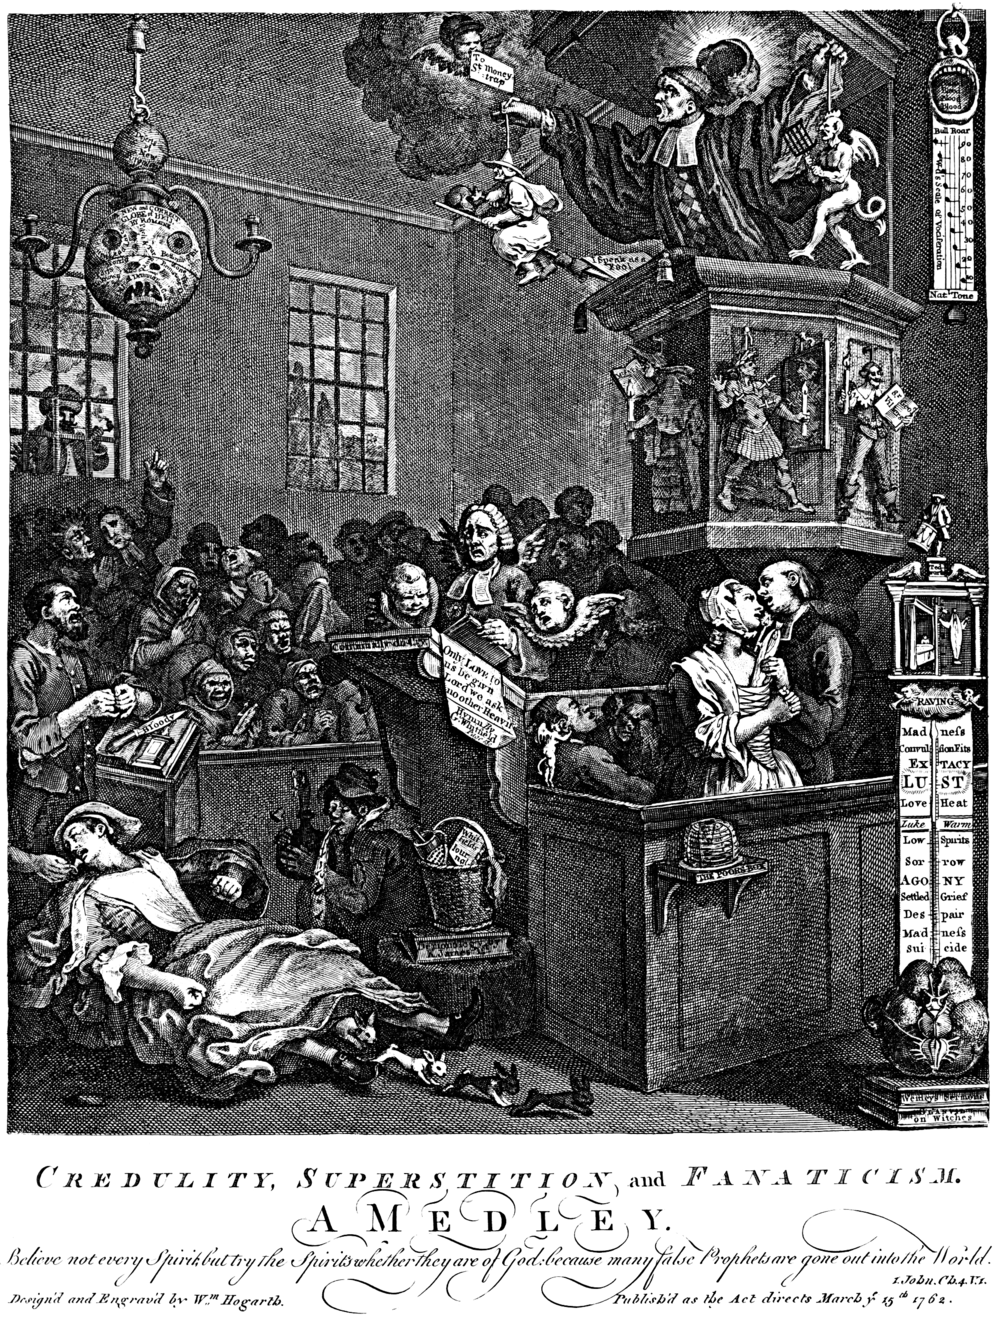 bunnies, bunnies, it must be bunnies. Or correlation. |   Mary Toft and Her Extraordinary Delivery of Rabbits.